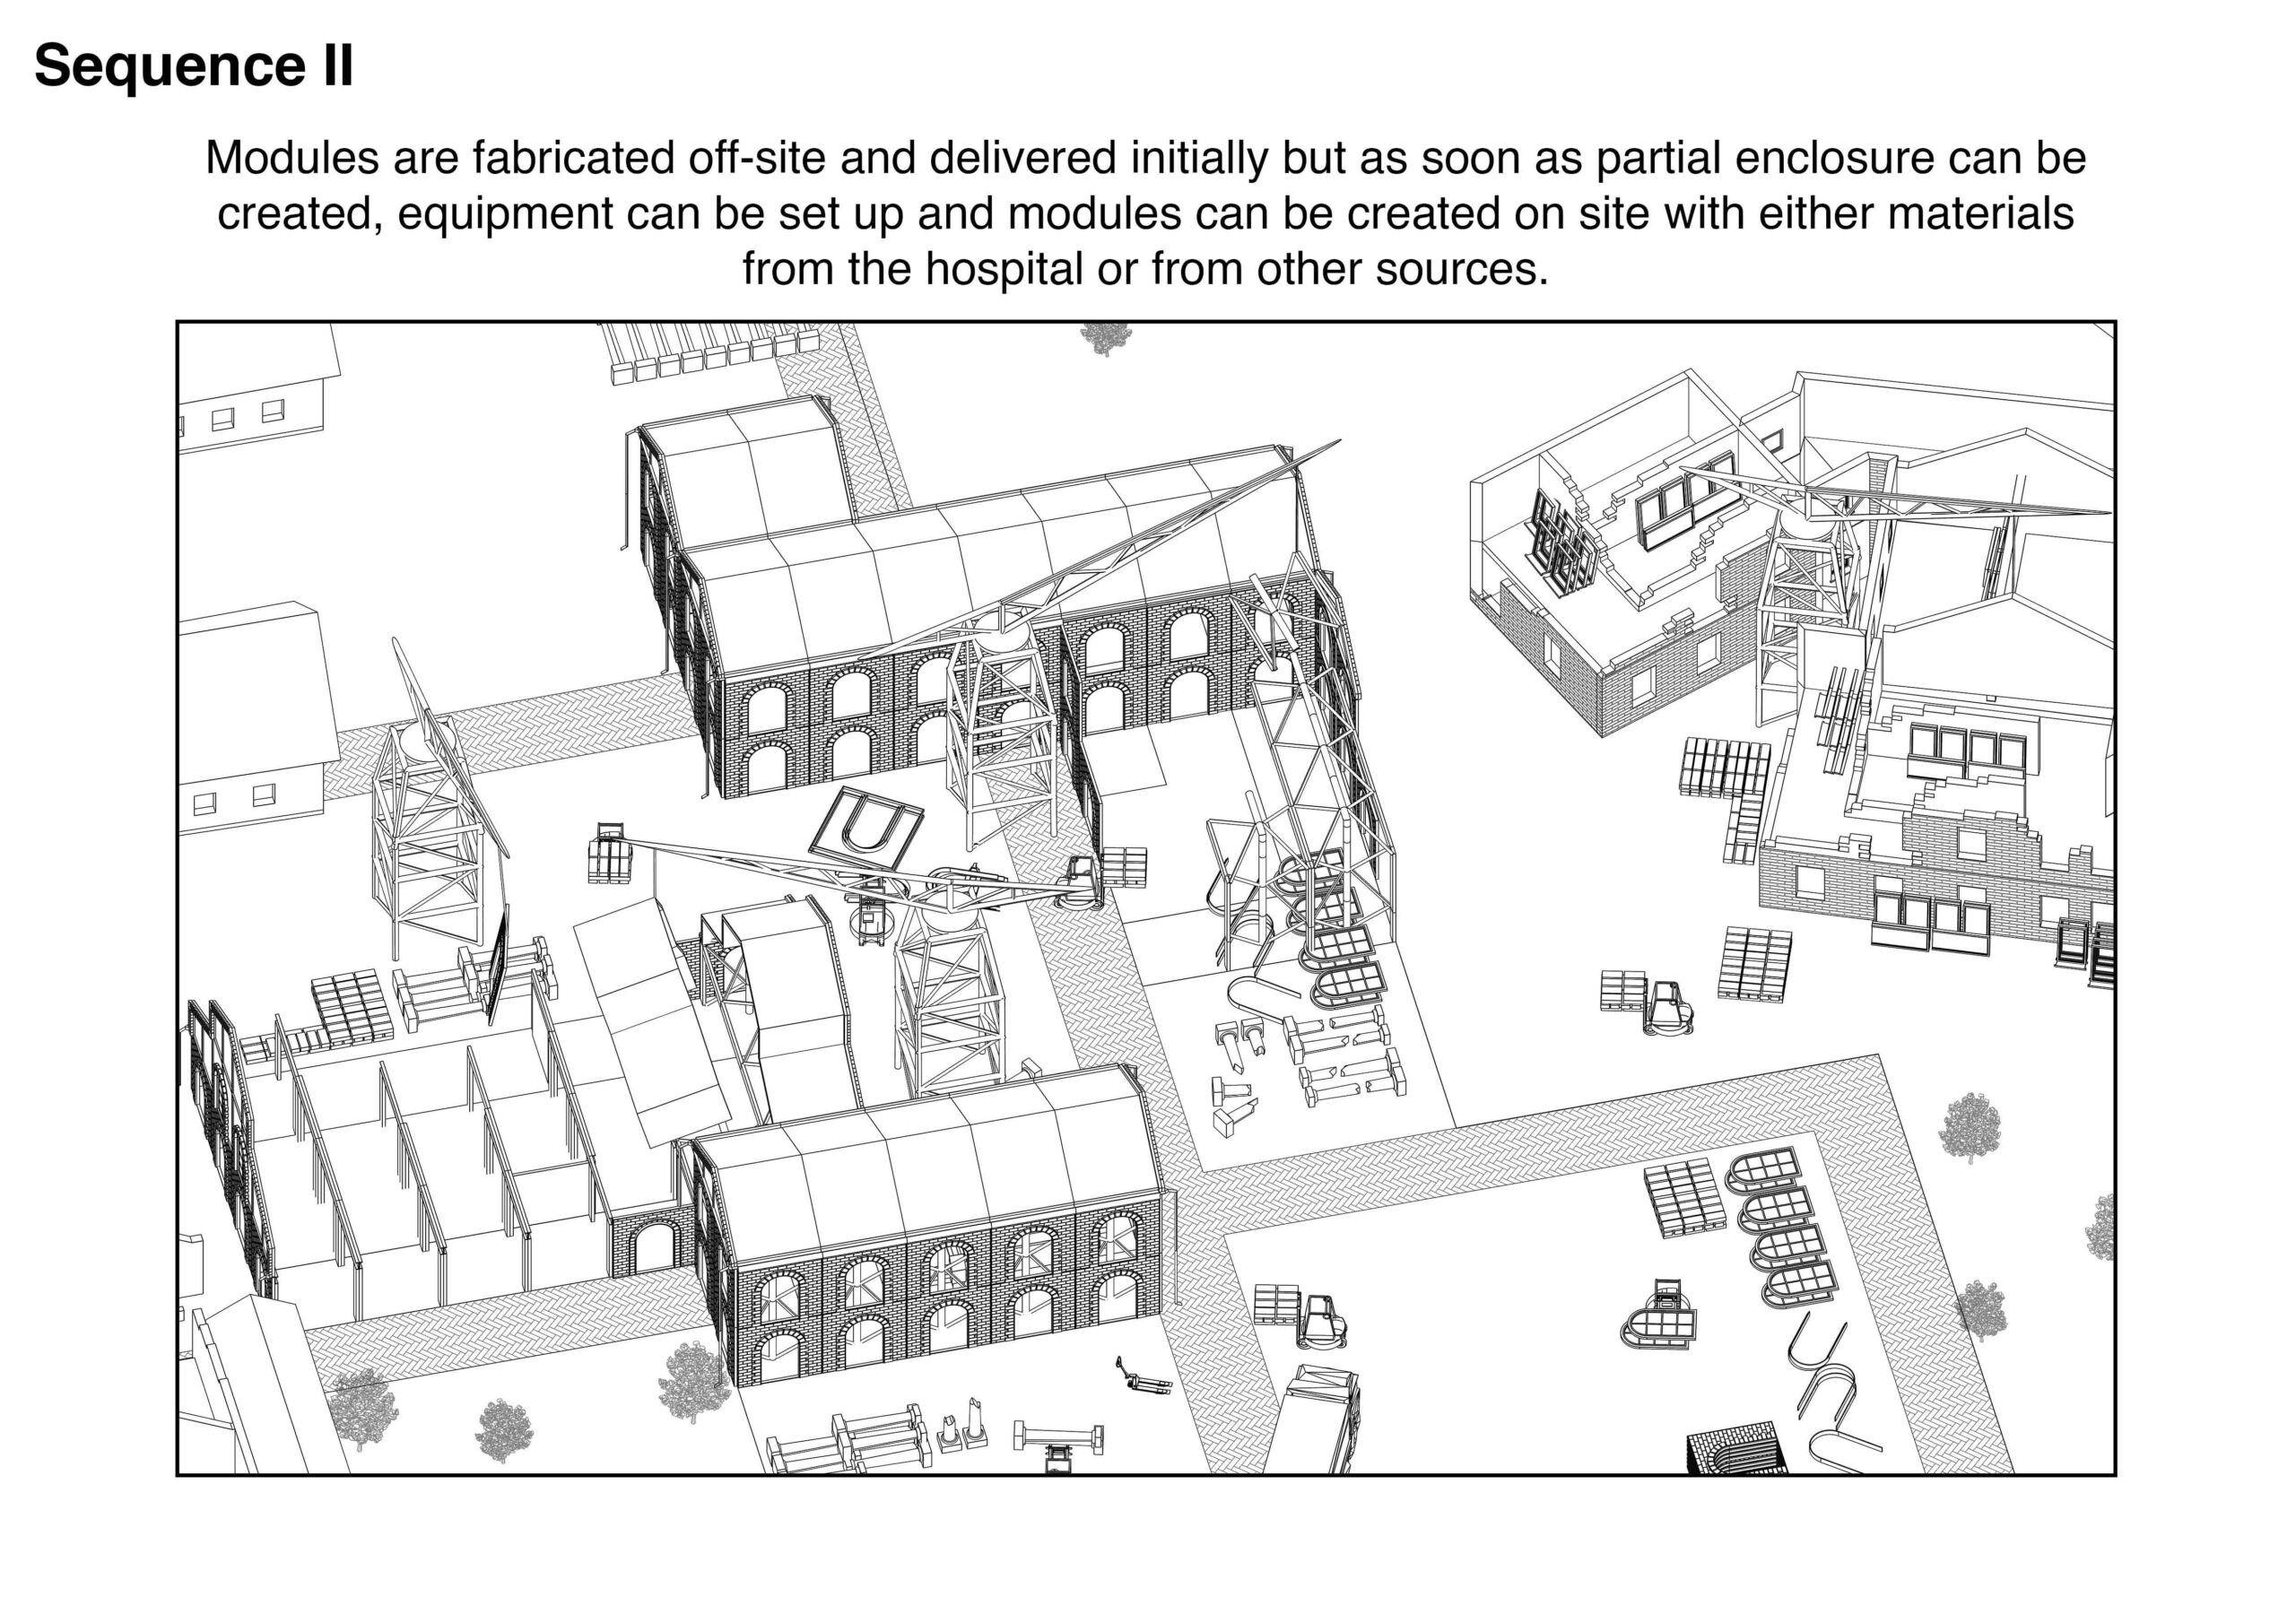 Portfolio Page of an axonometric drawing that shows the second stage of the process, with materials fabricated off site and delivered